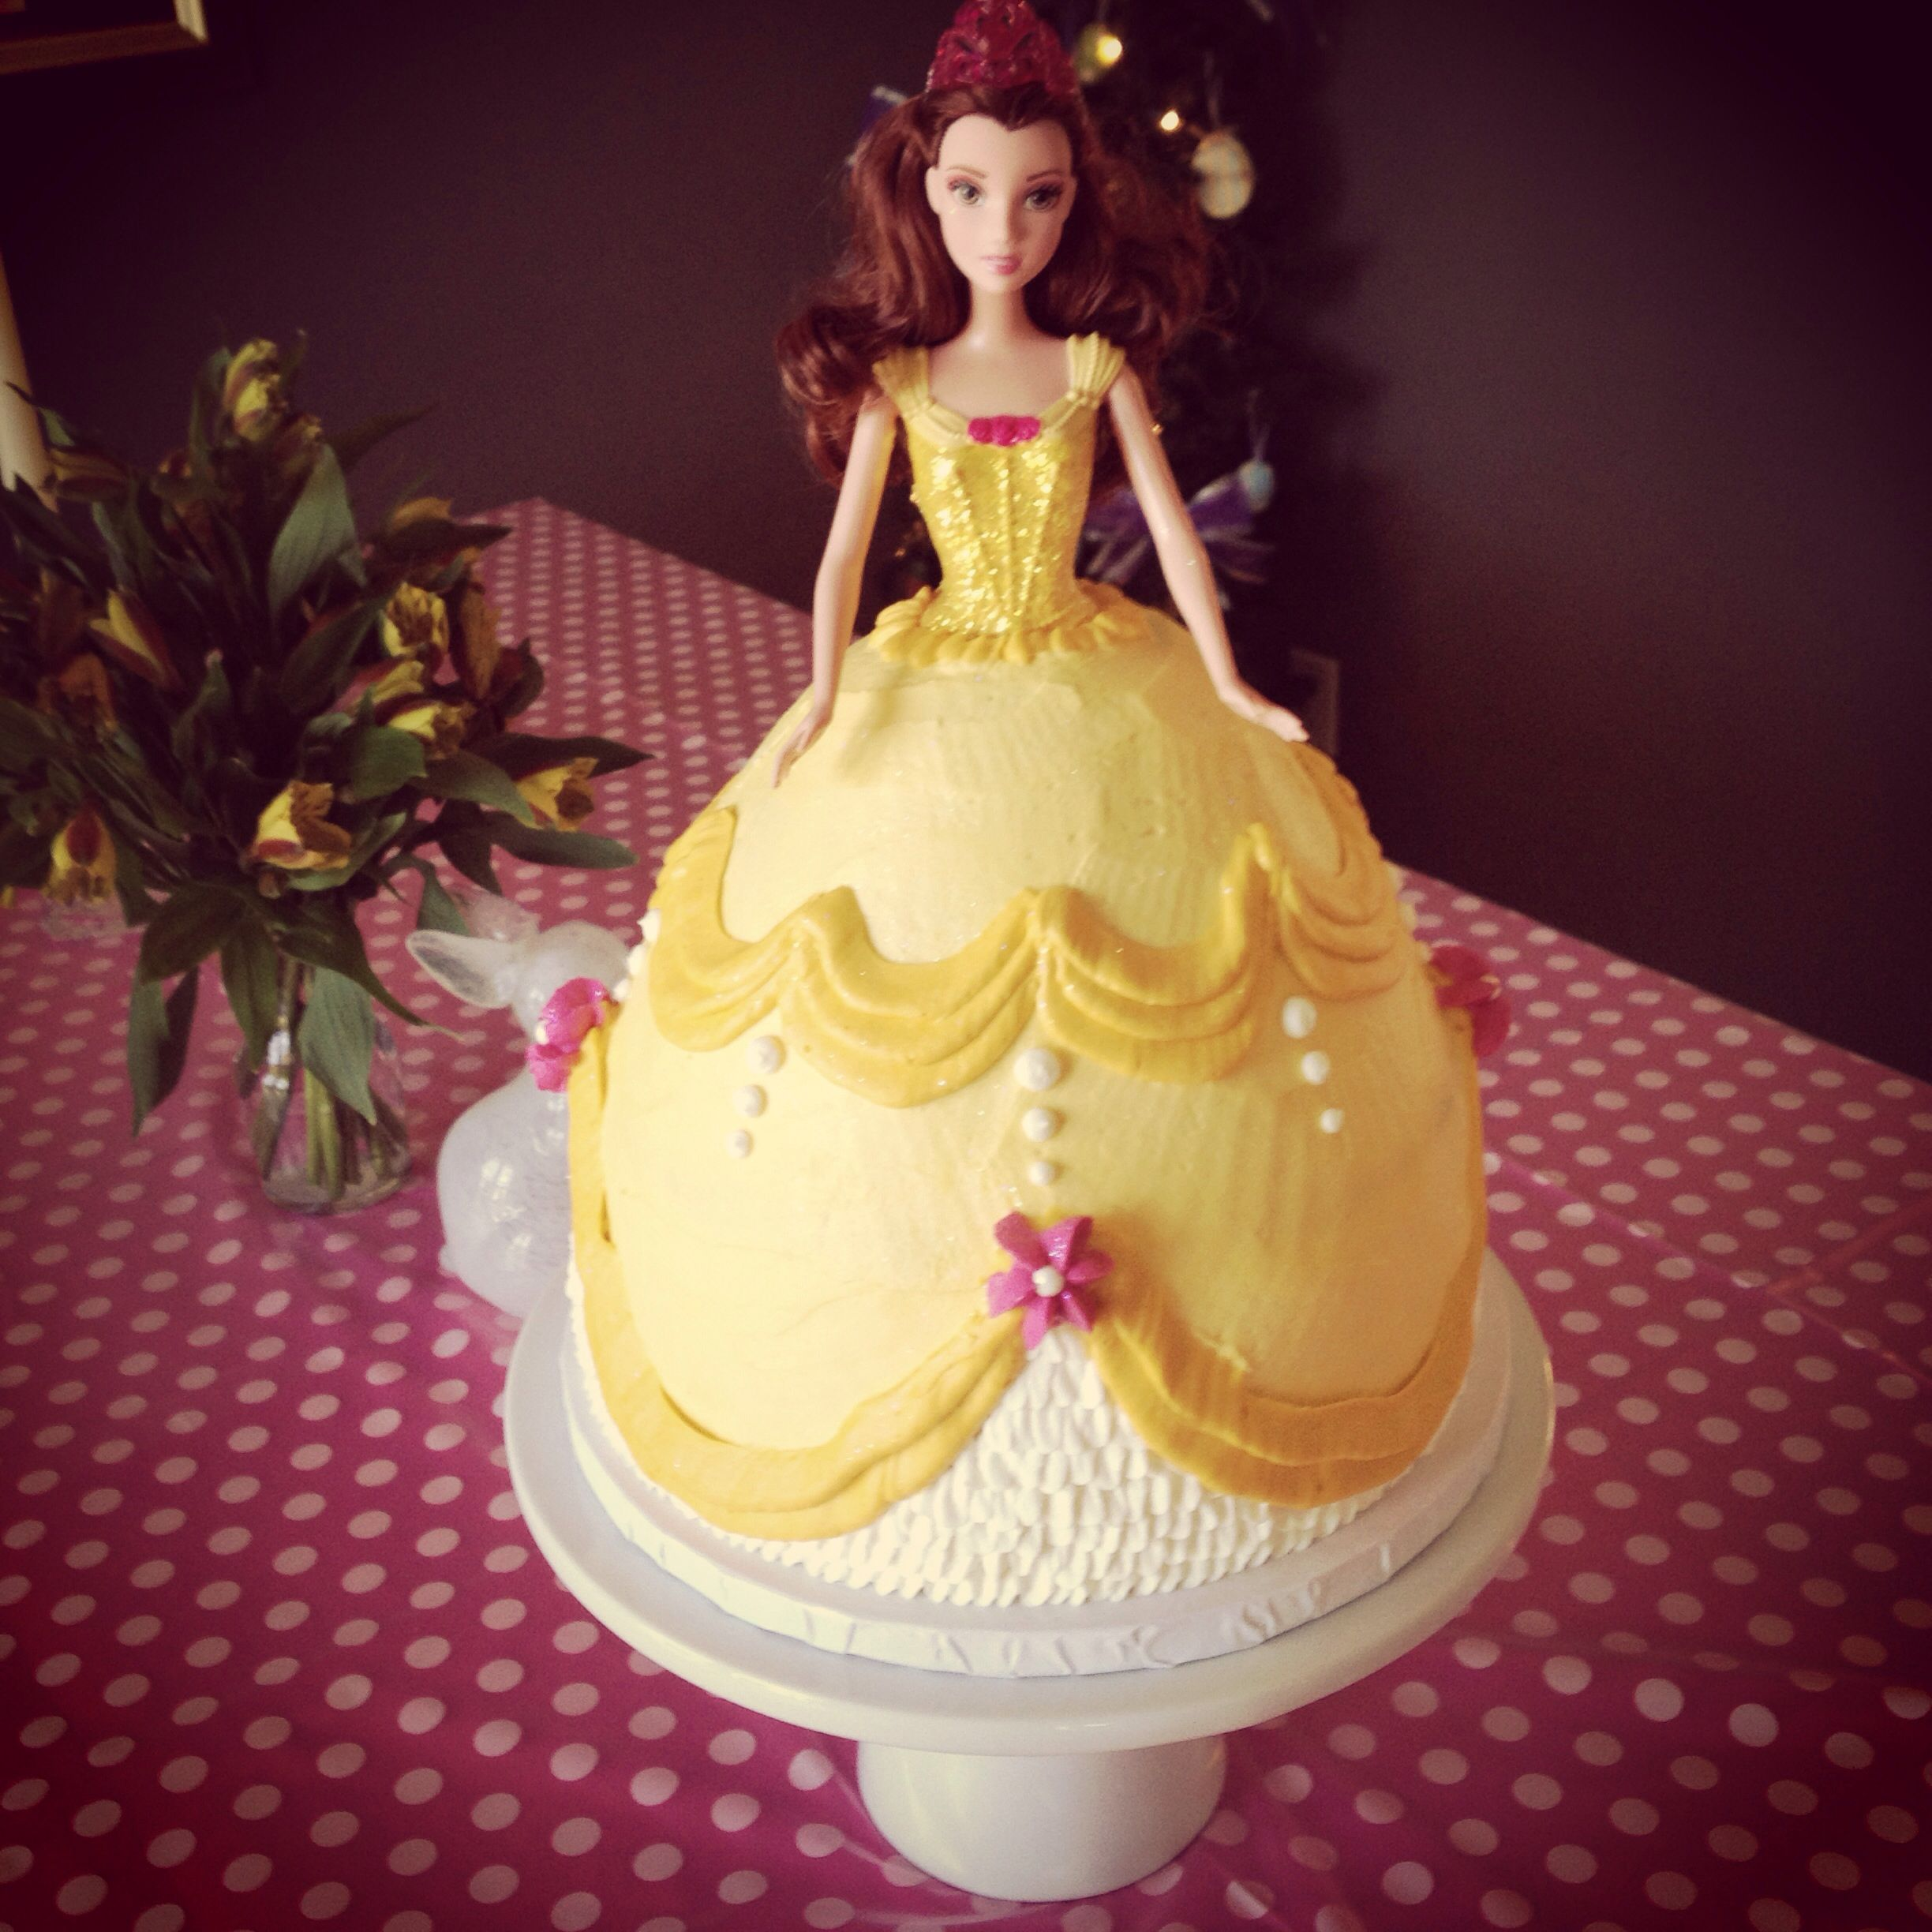 Disney S Beauty And The Beast Princess Belle Birthday Cake With